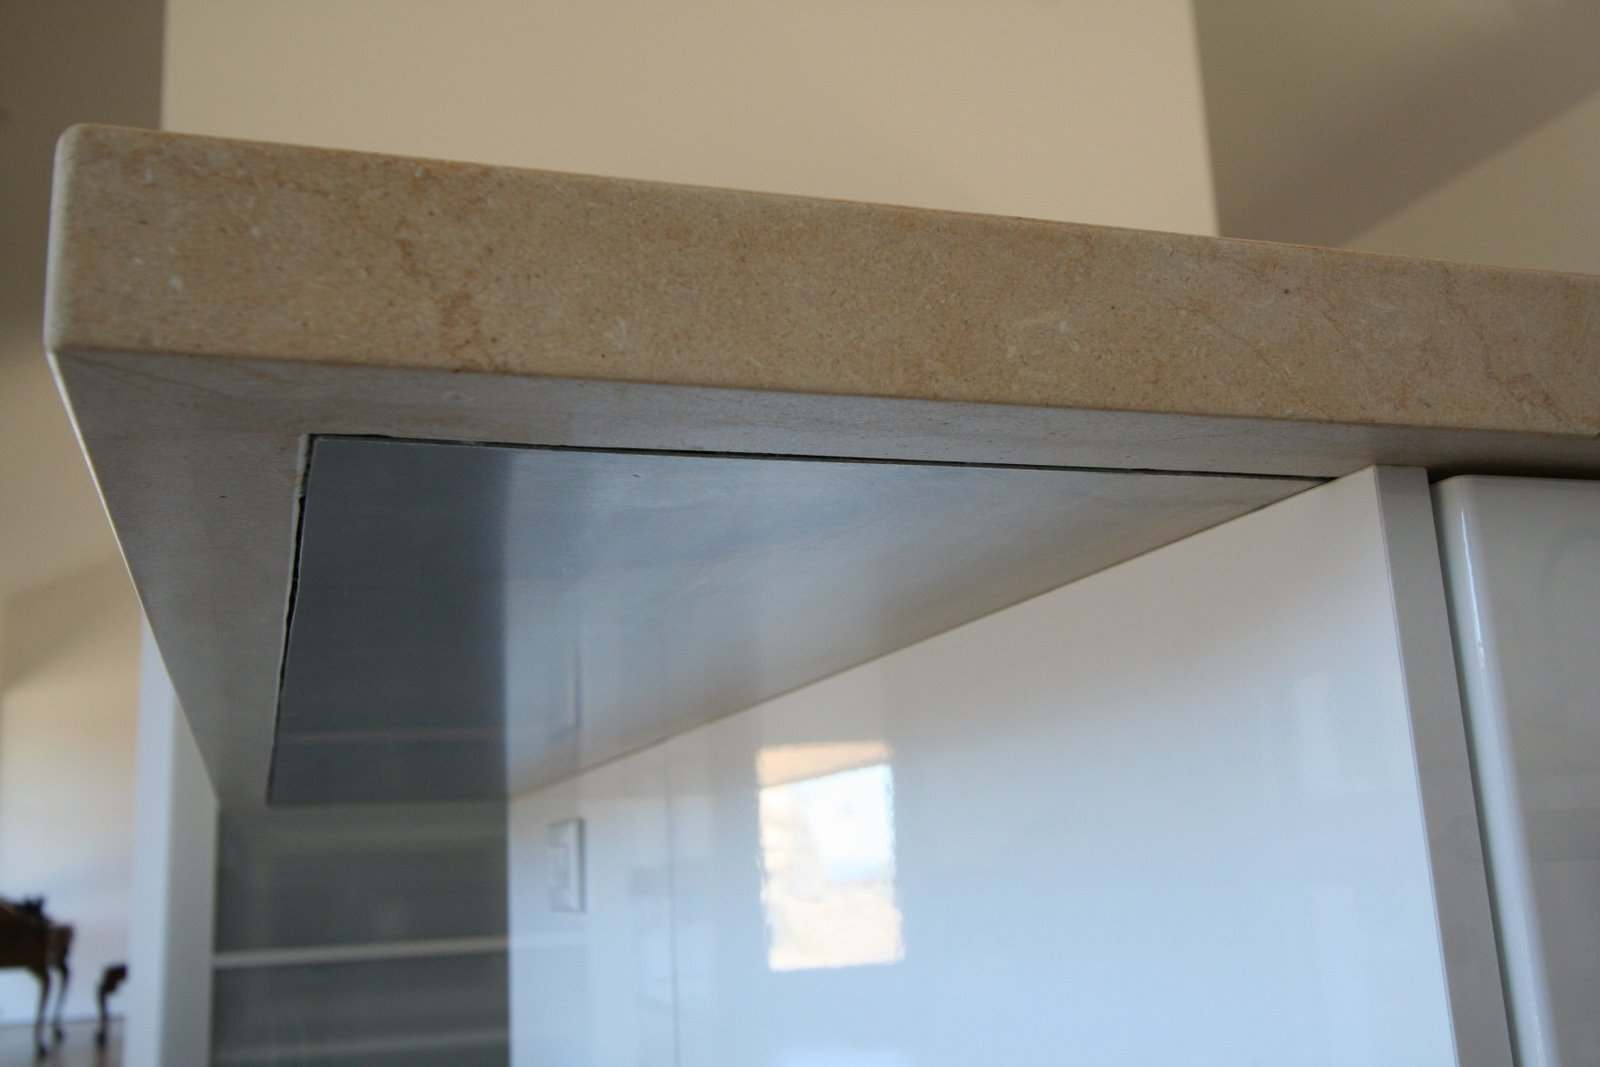 Finished counter with Teklam Subtop